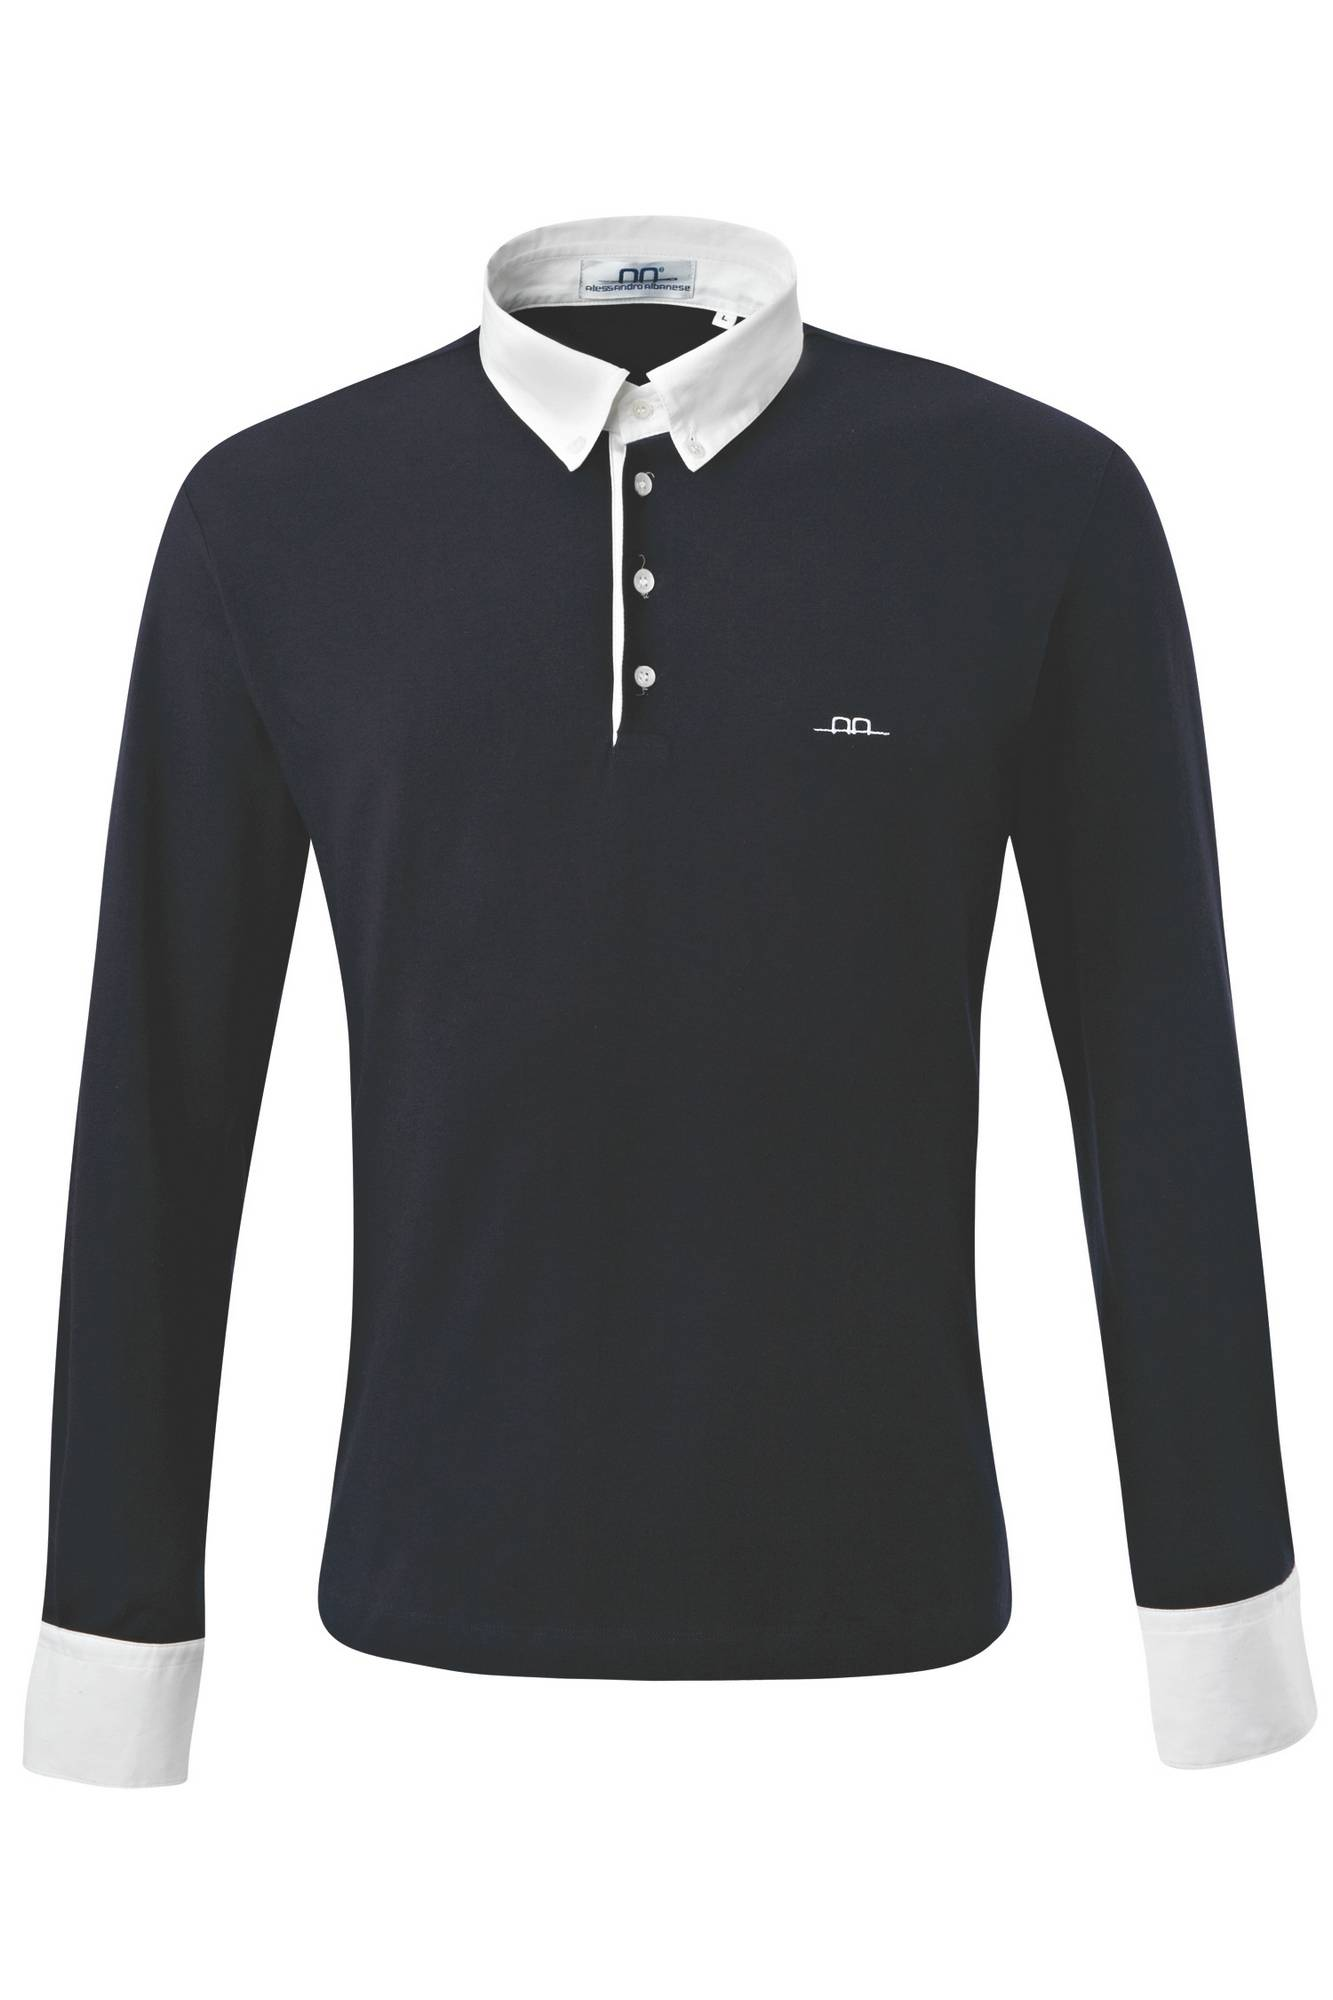 Alessandro Albanese Dubai Mens Shirt Long Sleeve